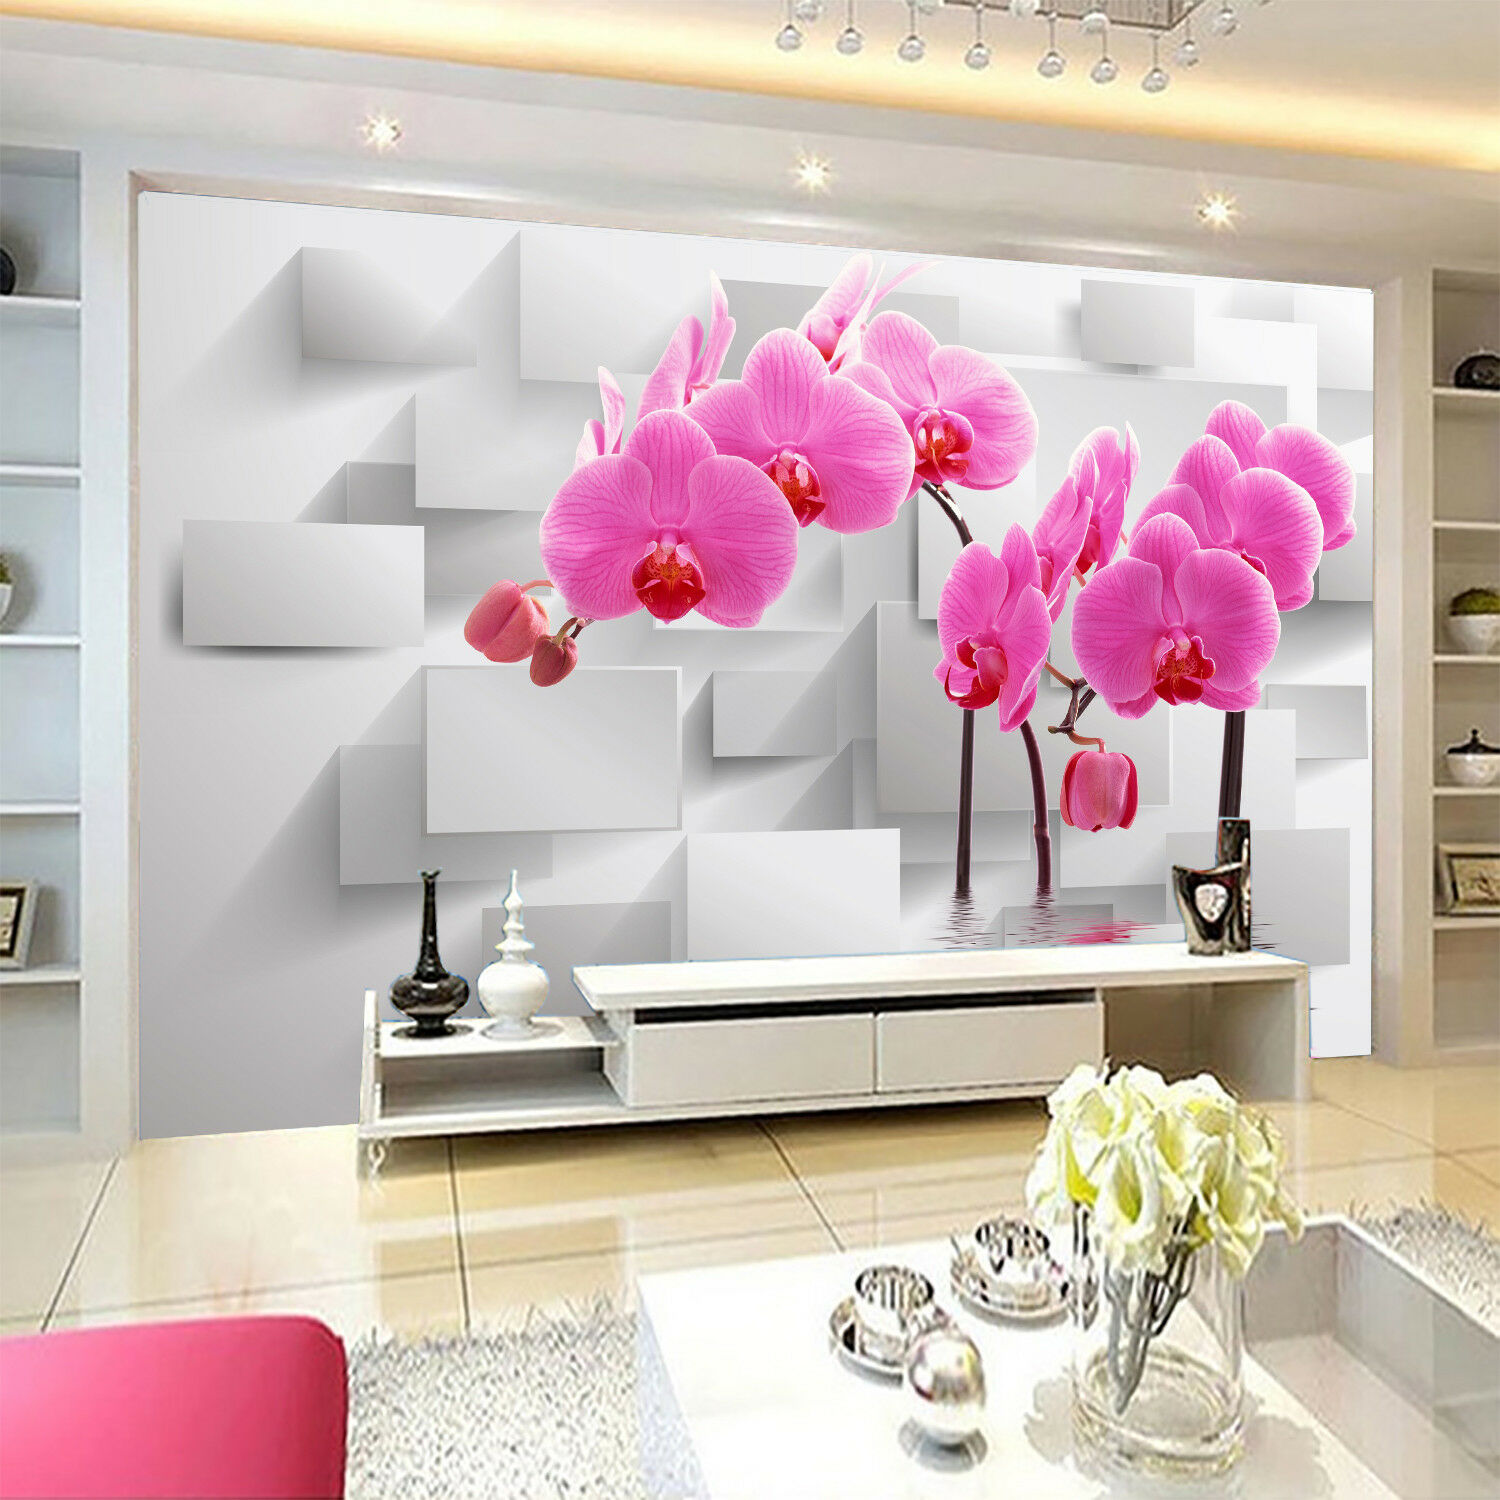 3D Phalaenopsis 5 Wallpaper Murals Wall Print Wallpaper Mural AJ WALLPAPER UK